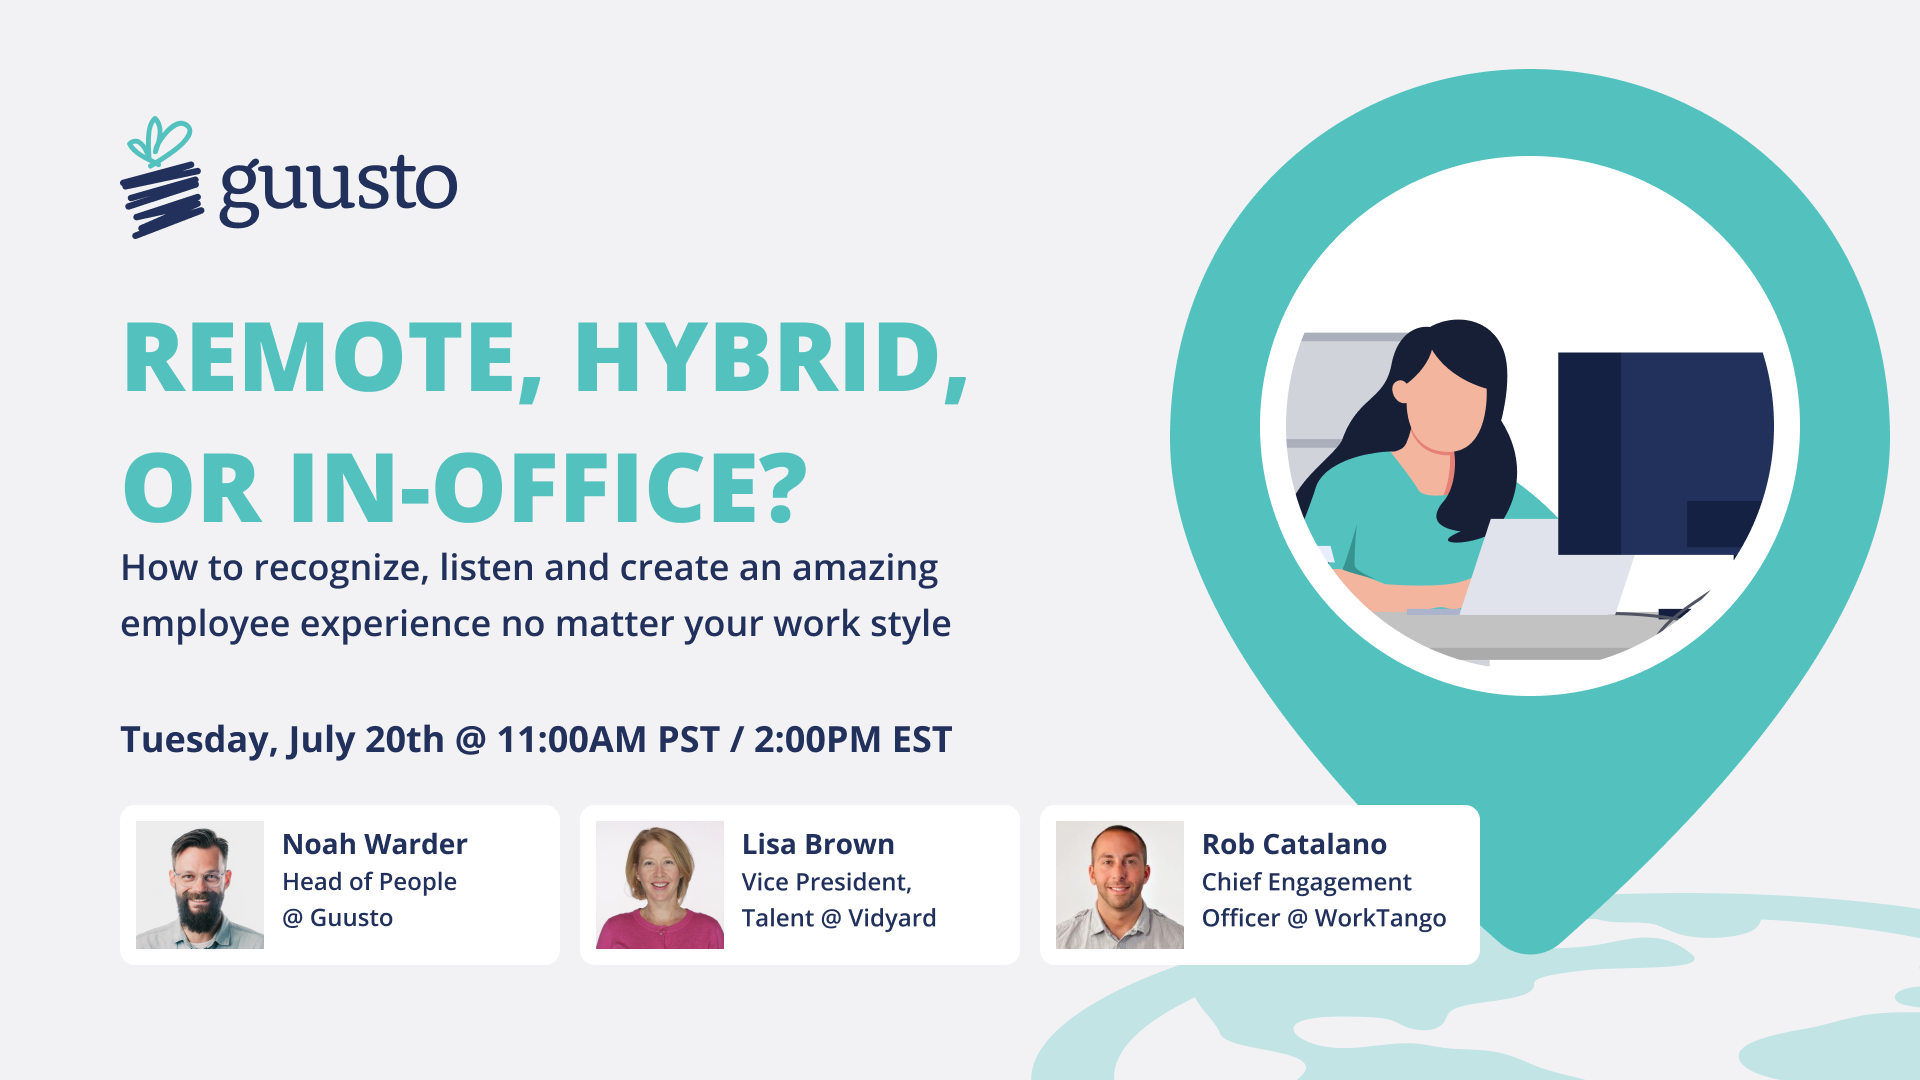 Remote, Hybrid, or In-Office?